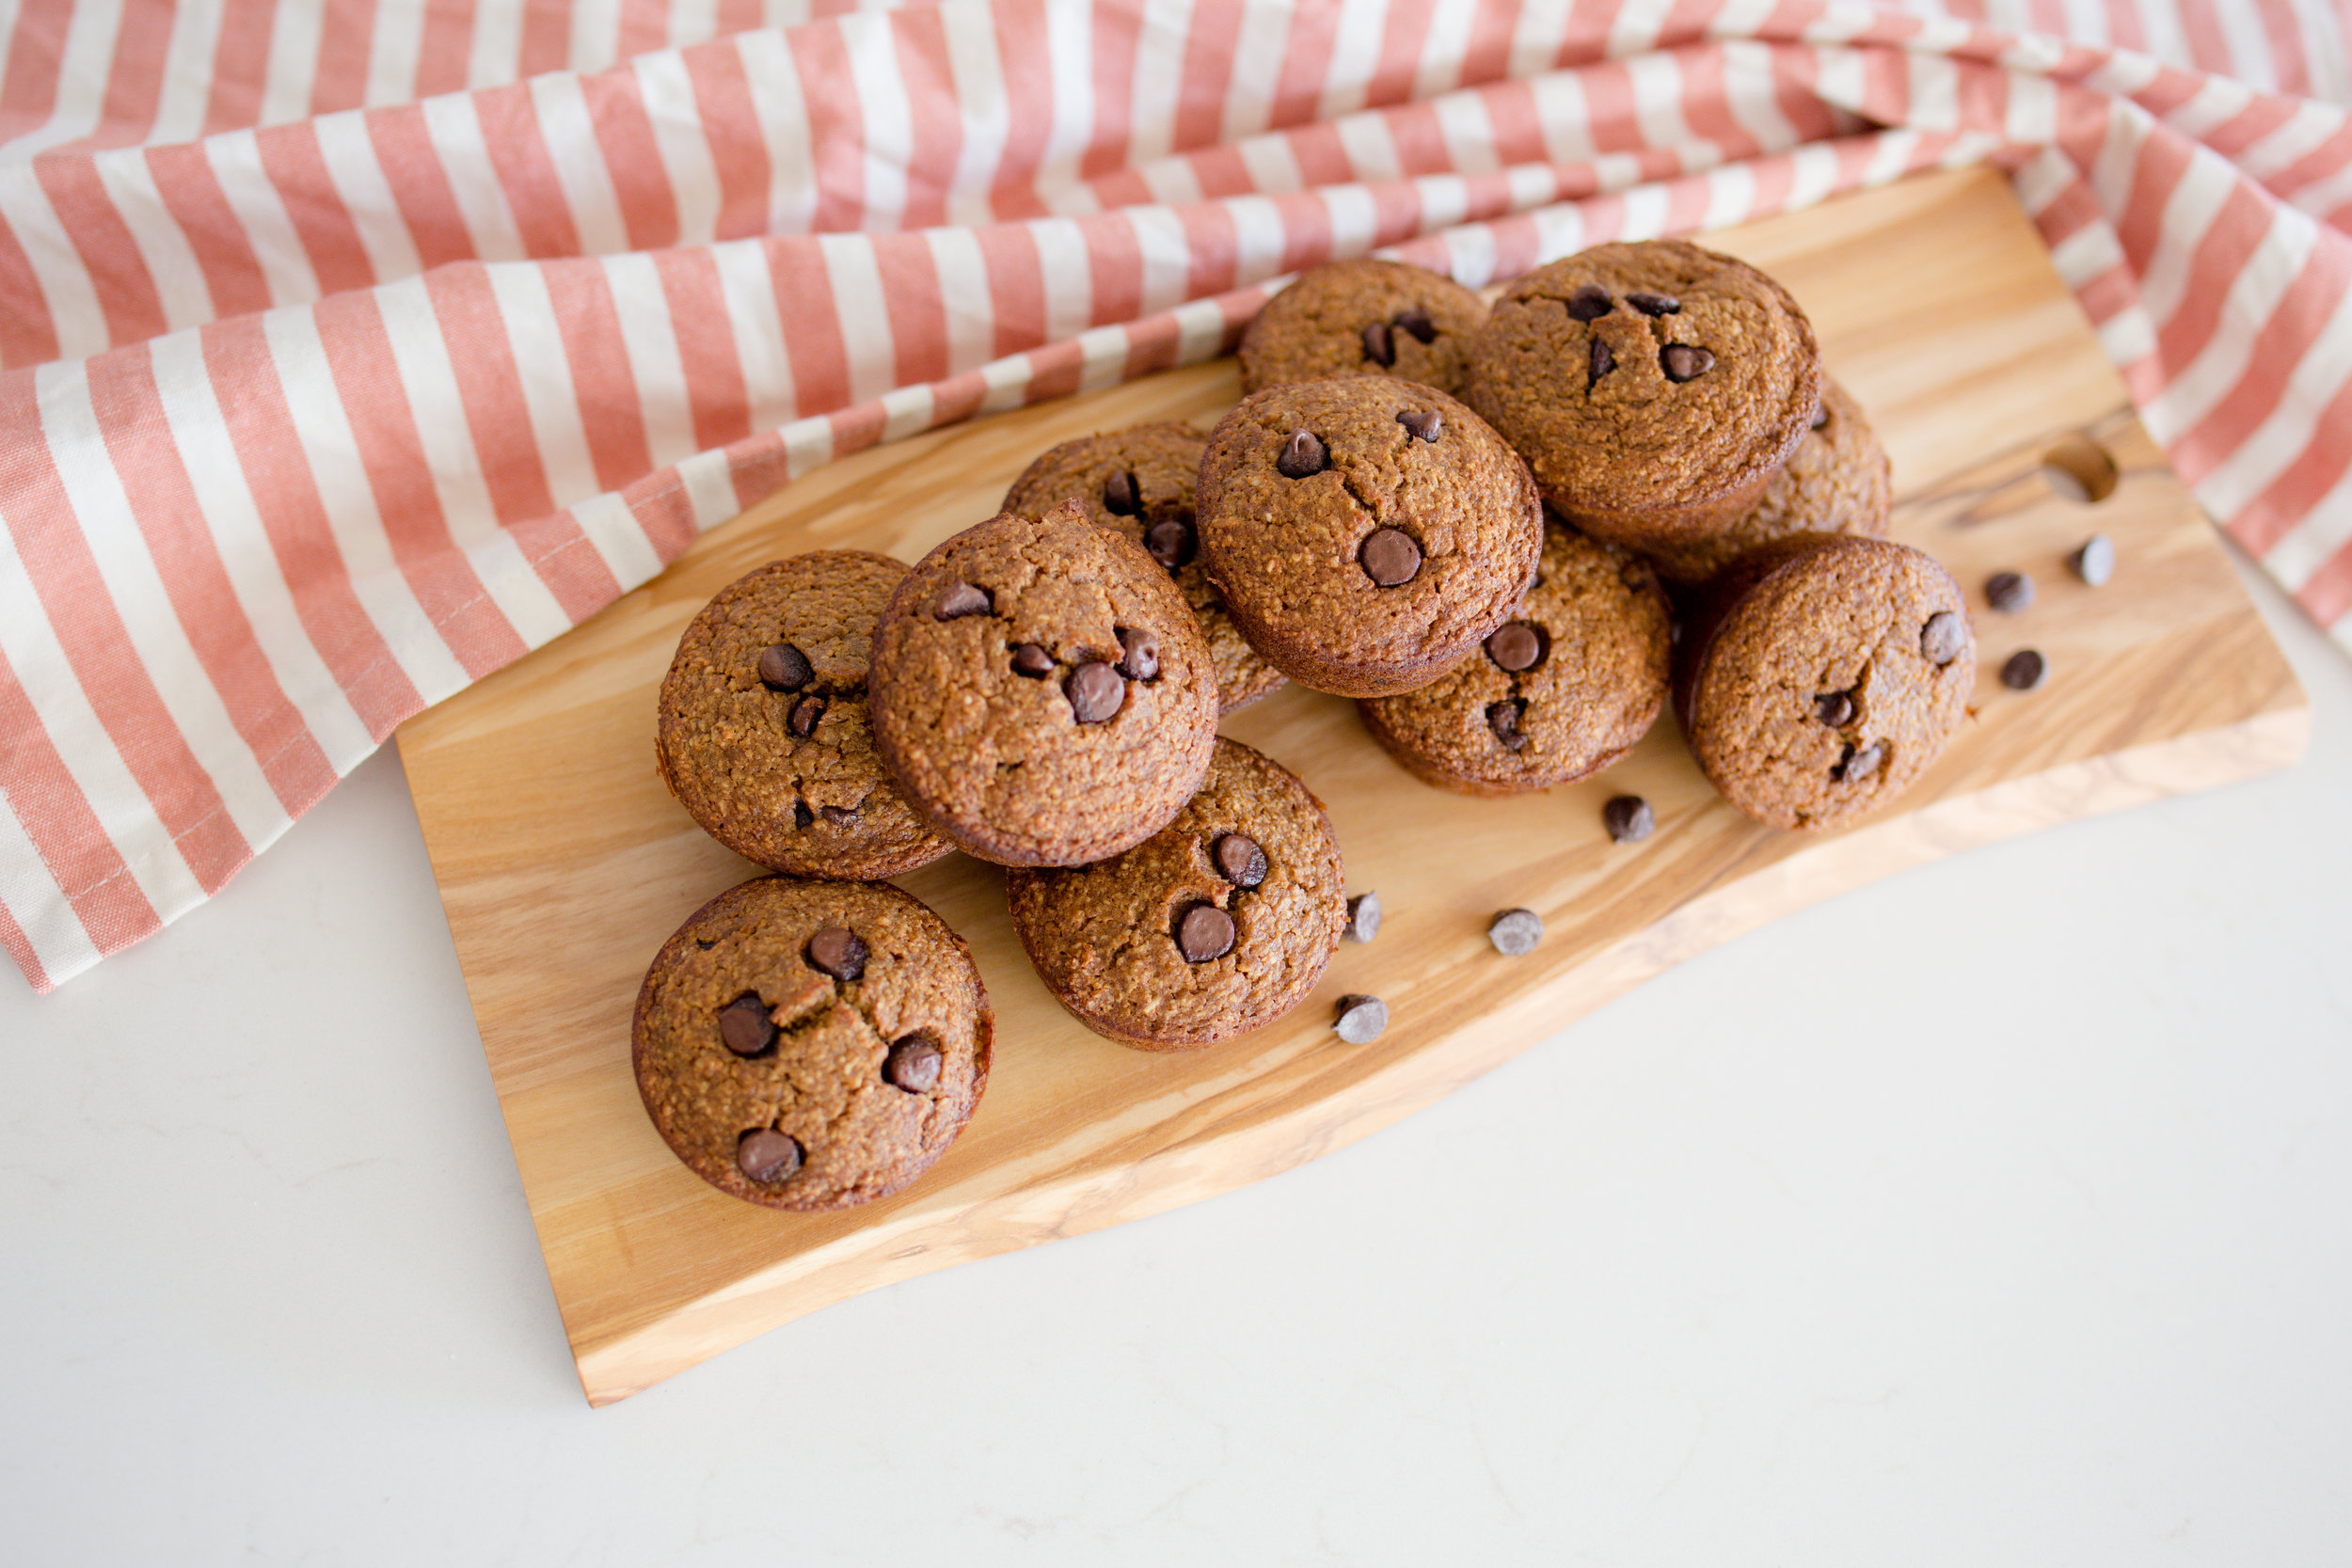 Guilt Free Gluten Free Chocolate Chip Muffins Fresh From the Oven on Wood Board